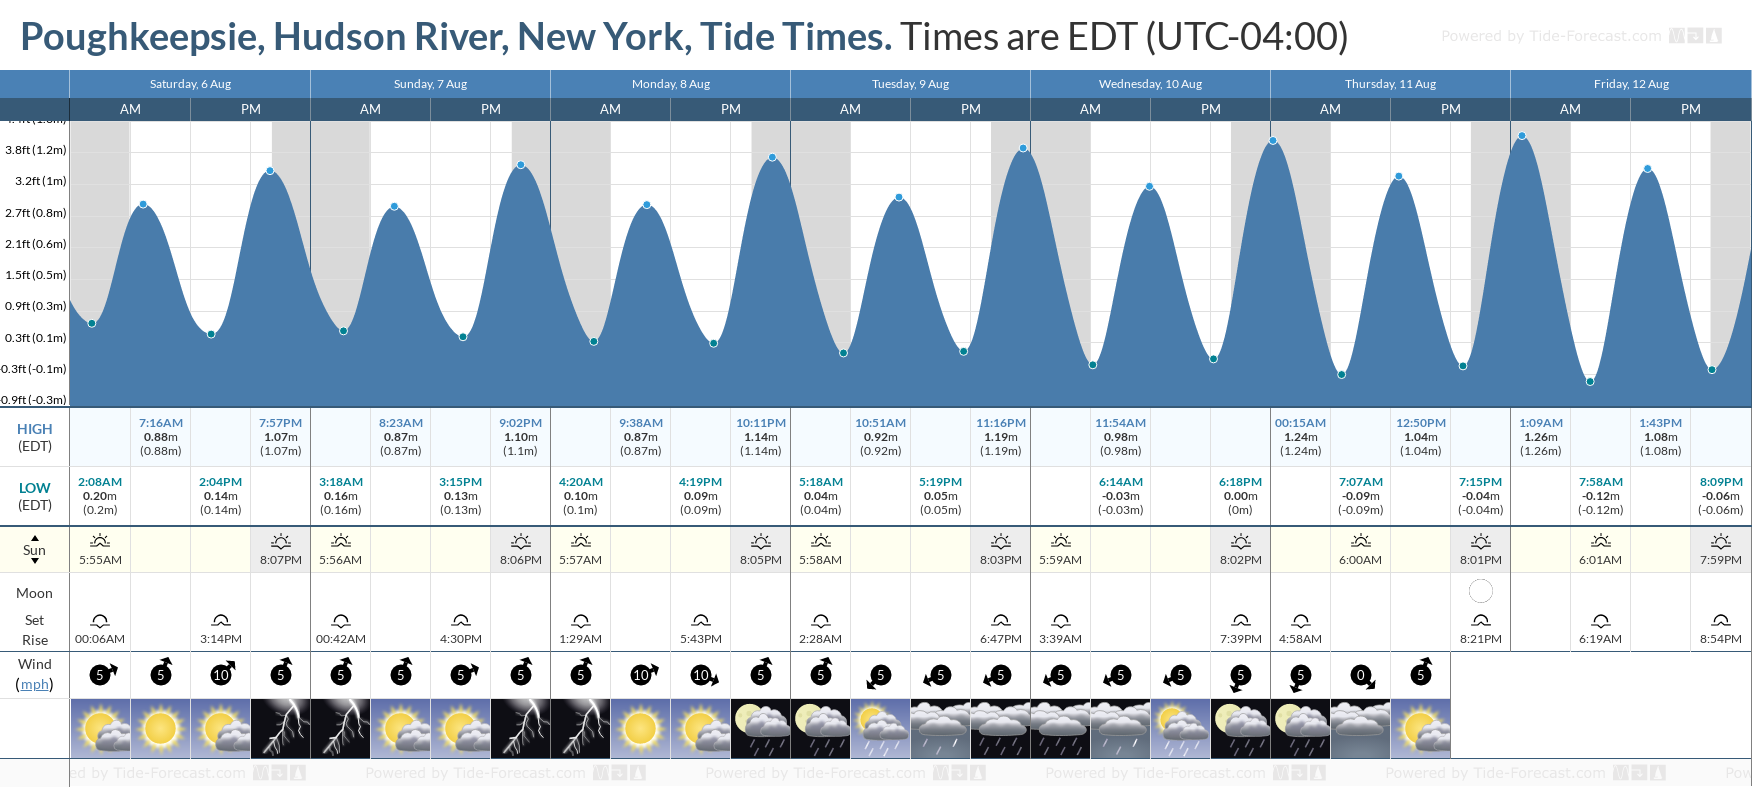 Poughkeepsie, Hudson River, New York Tide Chart including high and low tide tide times for the next 7 days